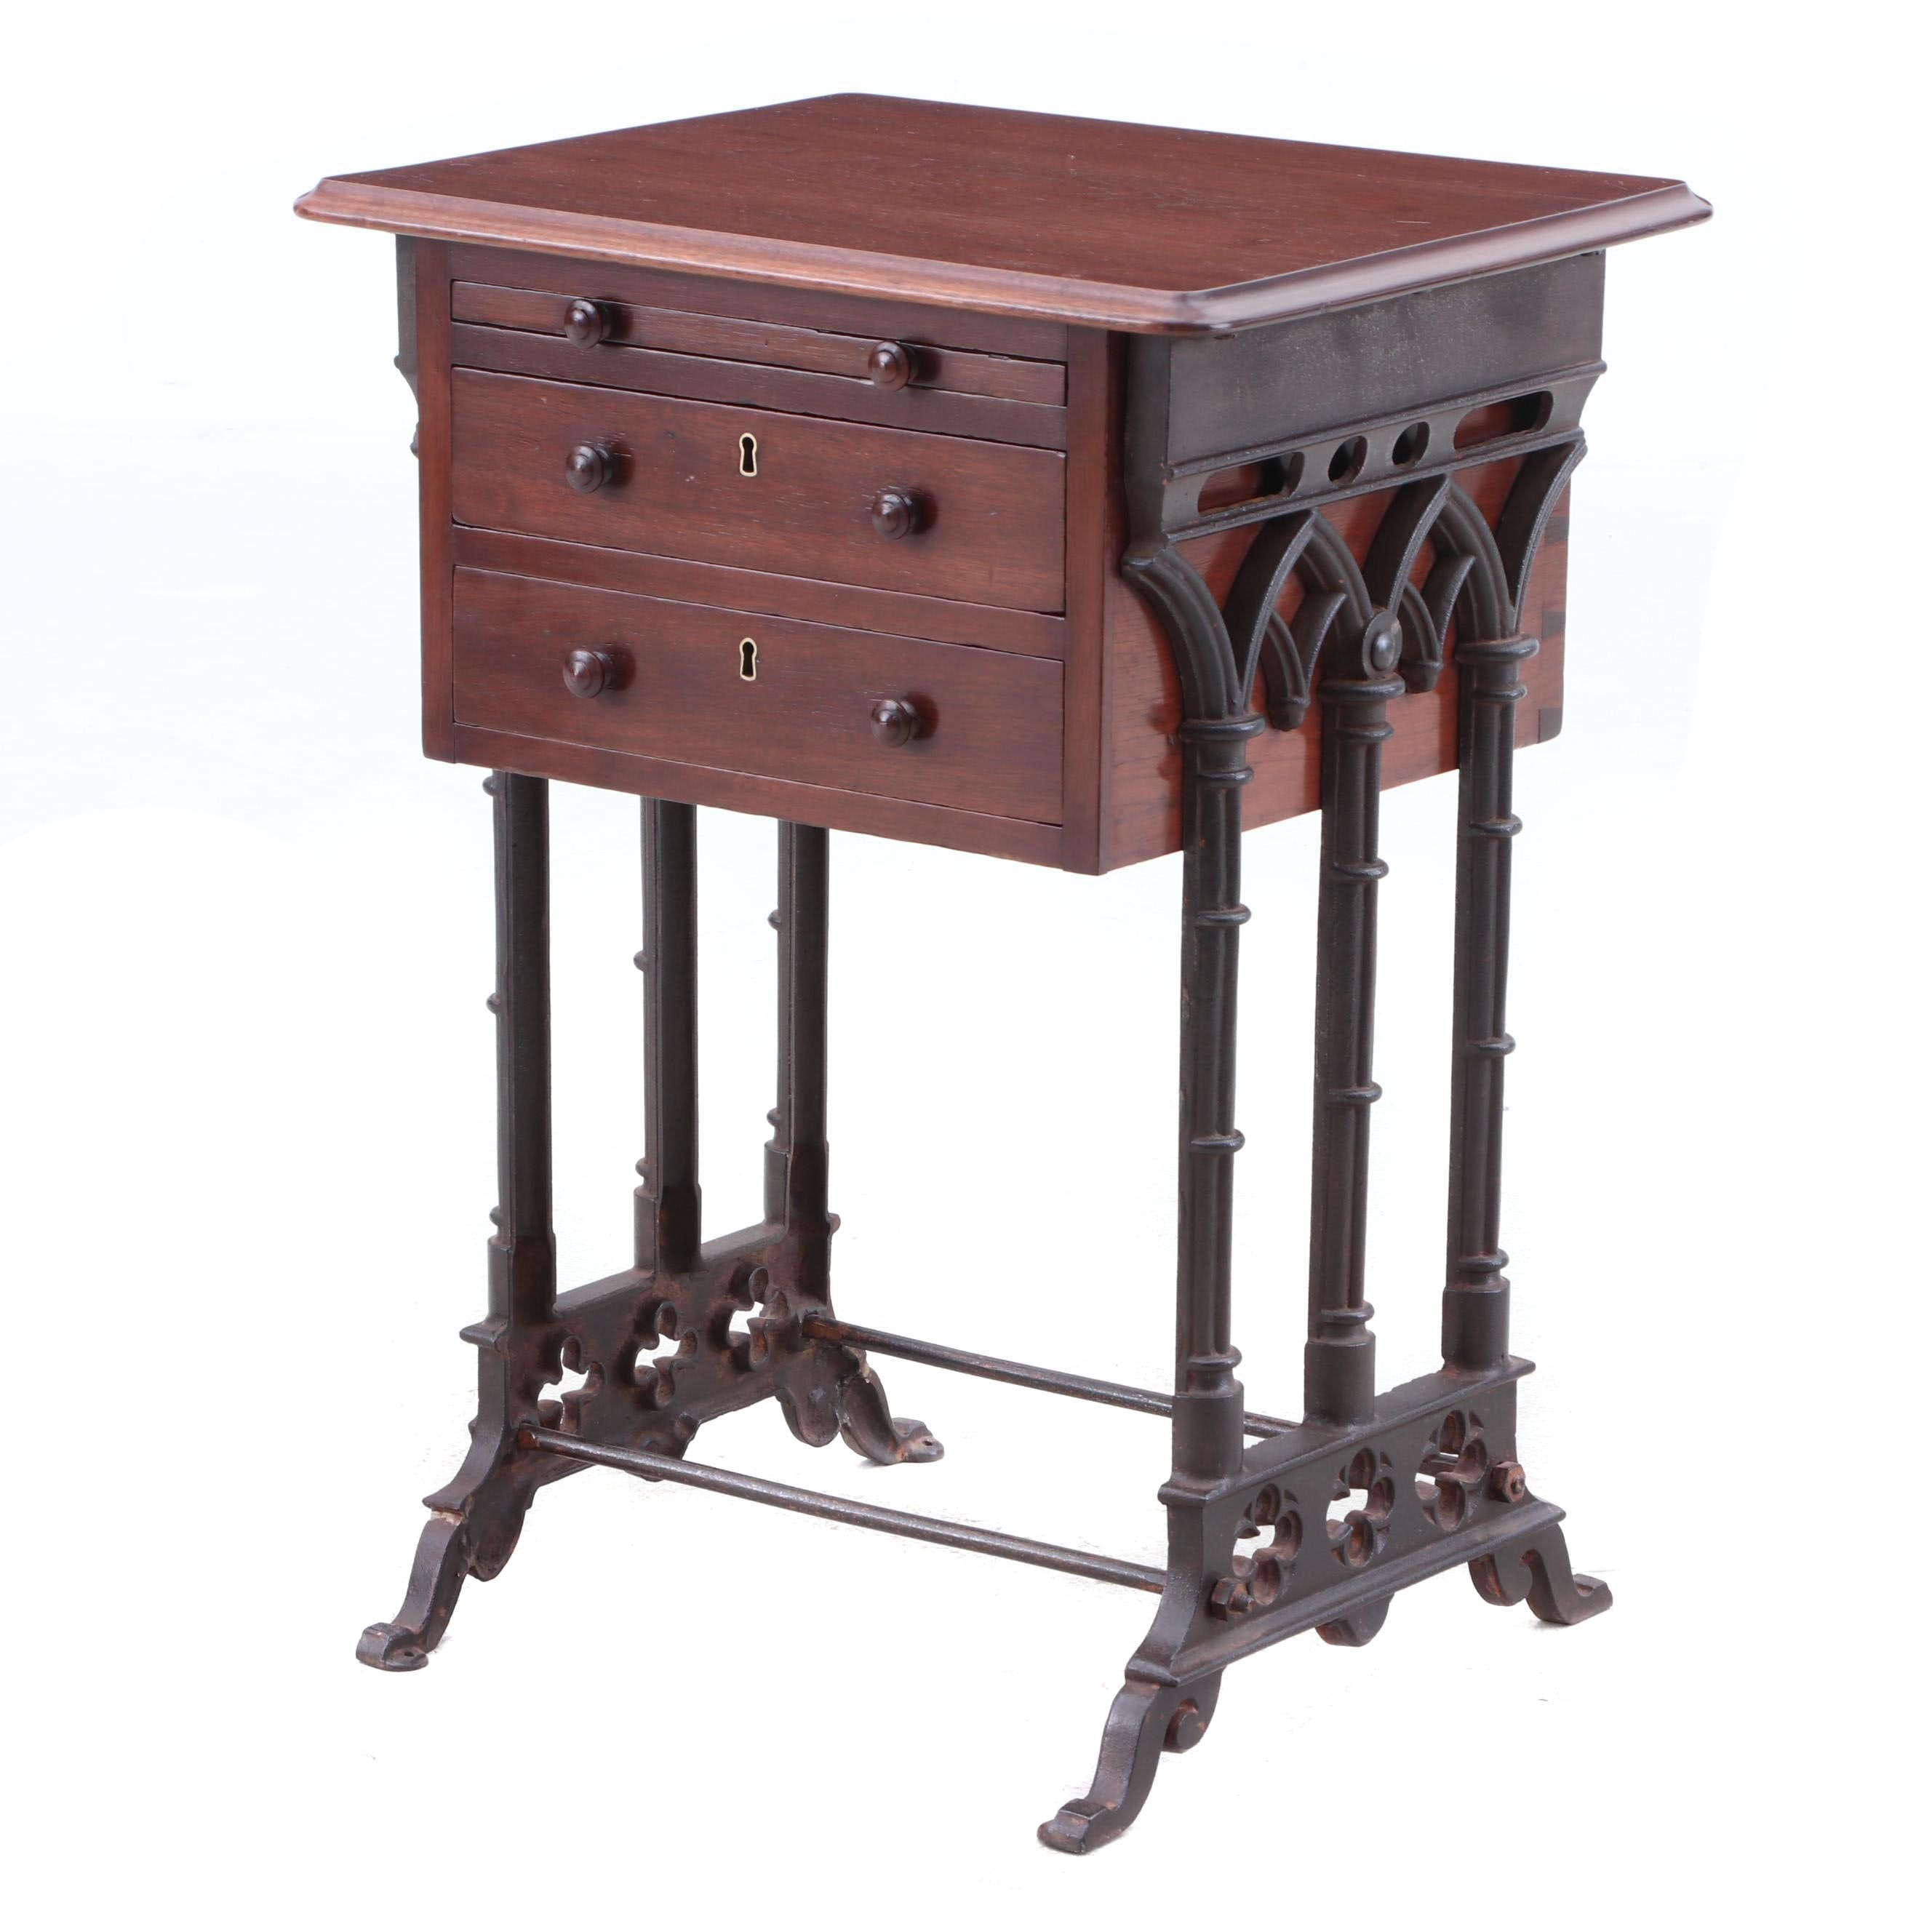 Gothic Revival Mahogany and Cast Iron Sewing Table, 19th Century